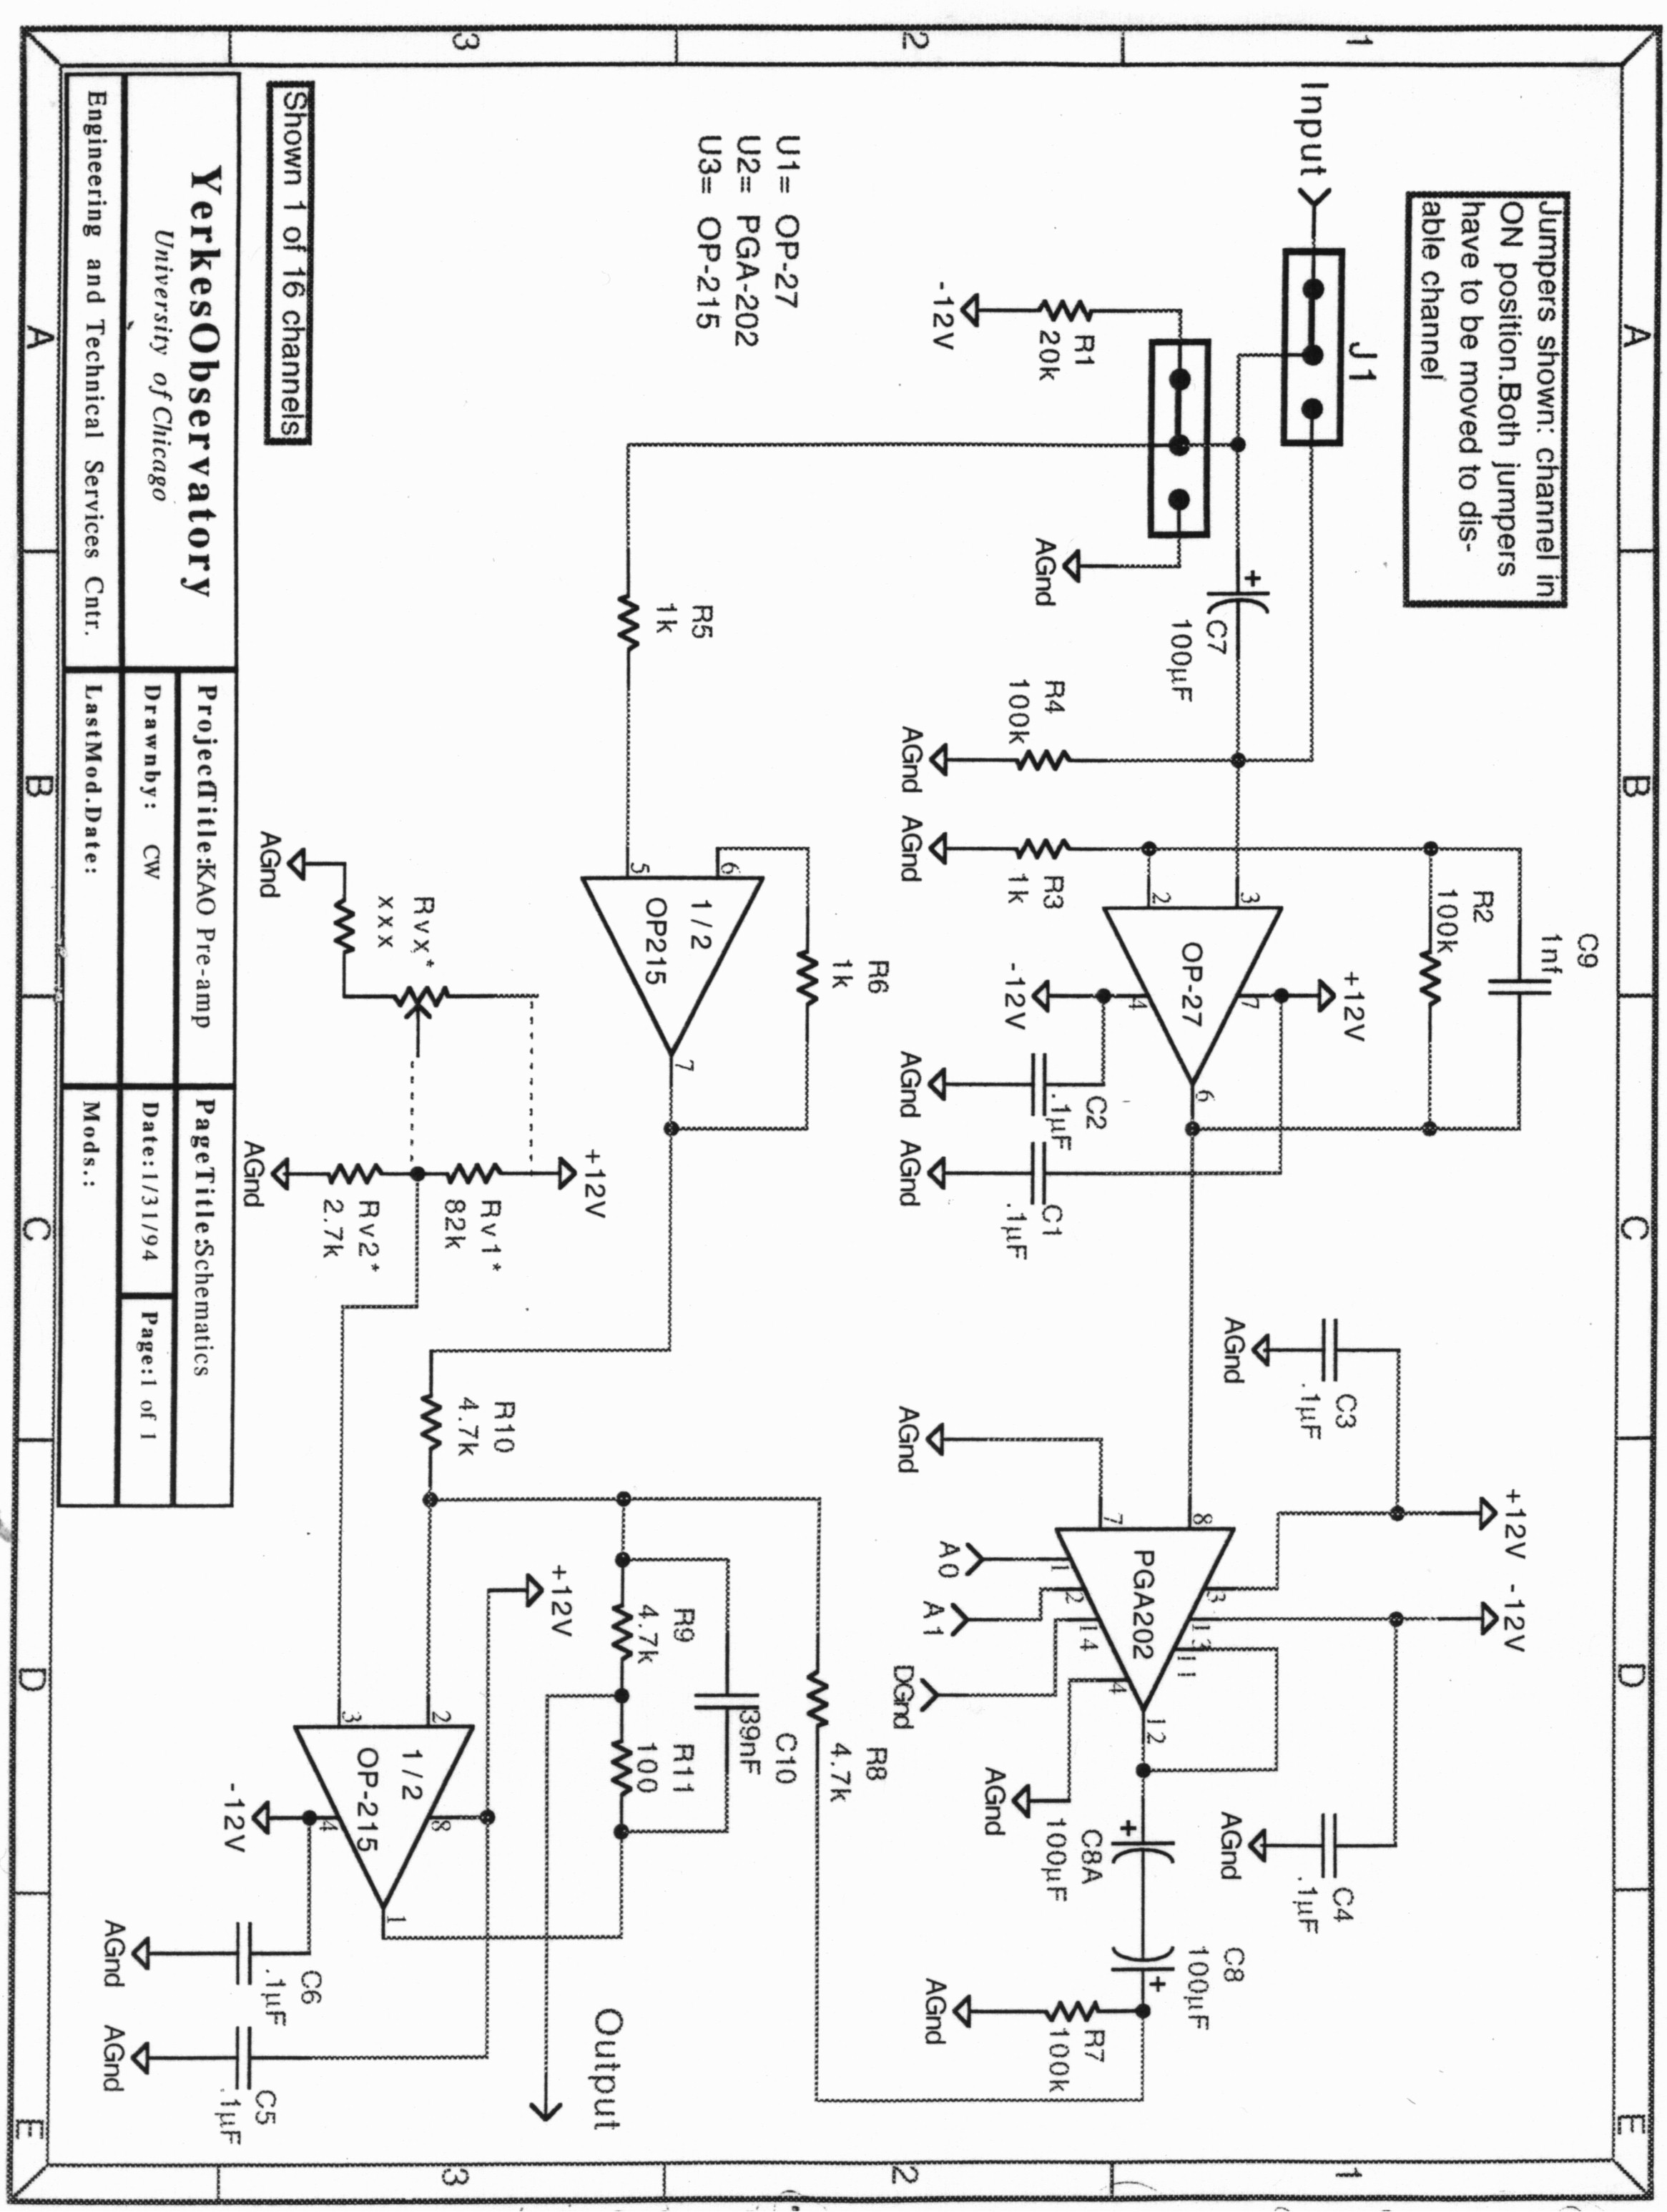 diagrams wiring   1974 mgb fuse box diagram